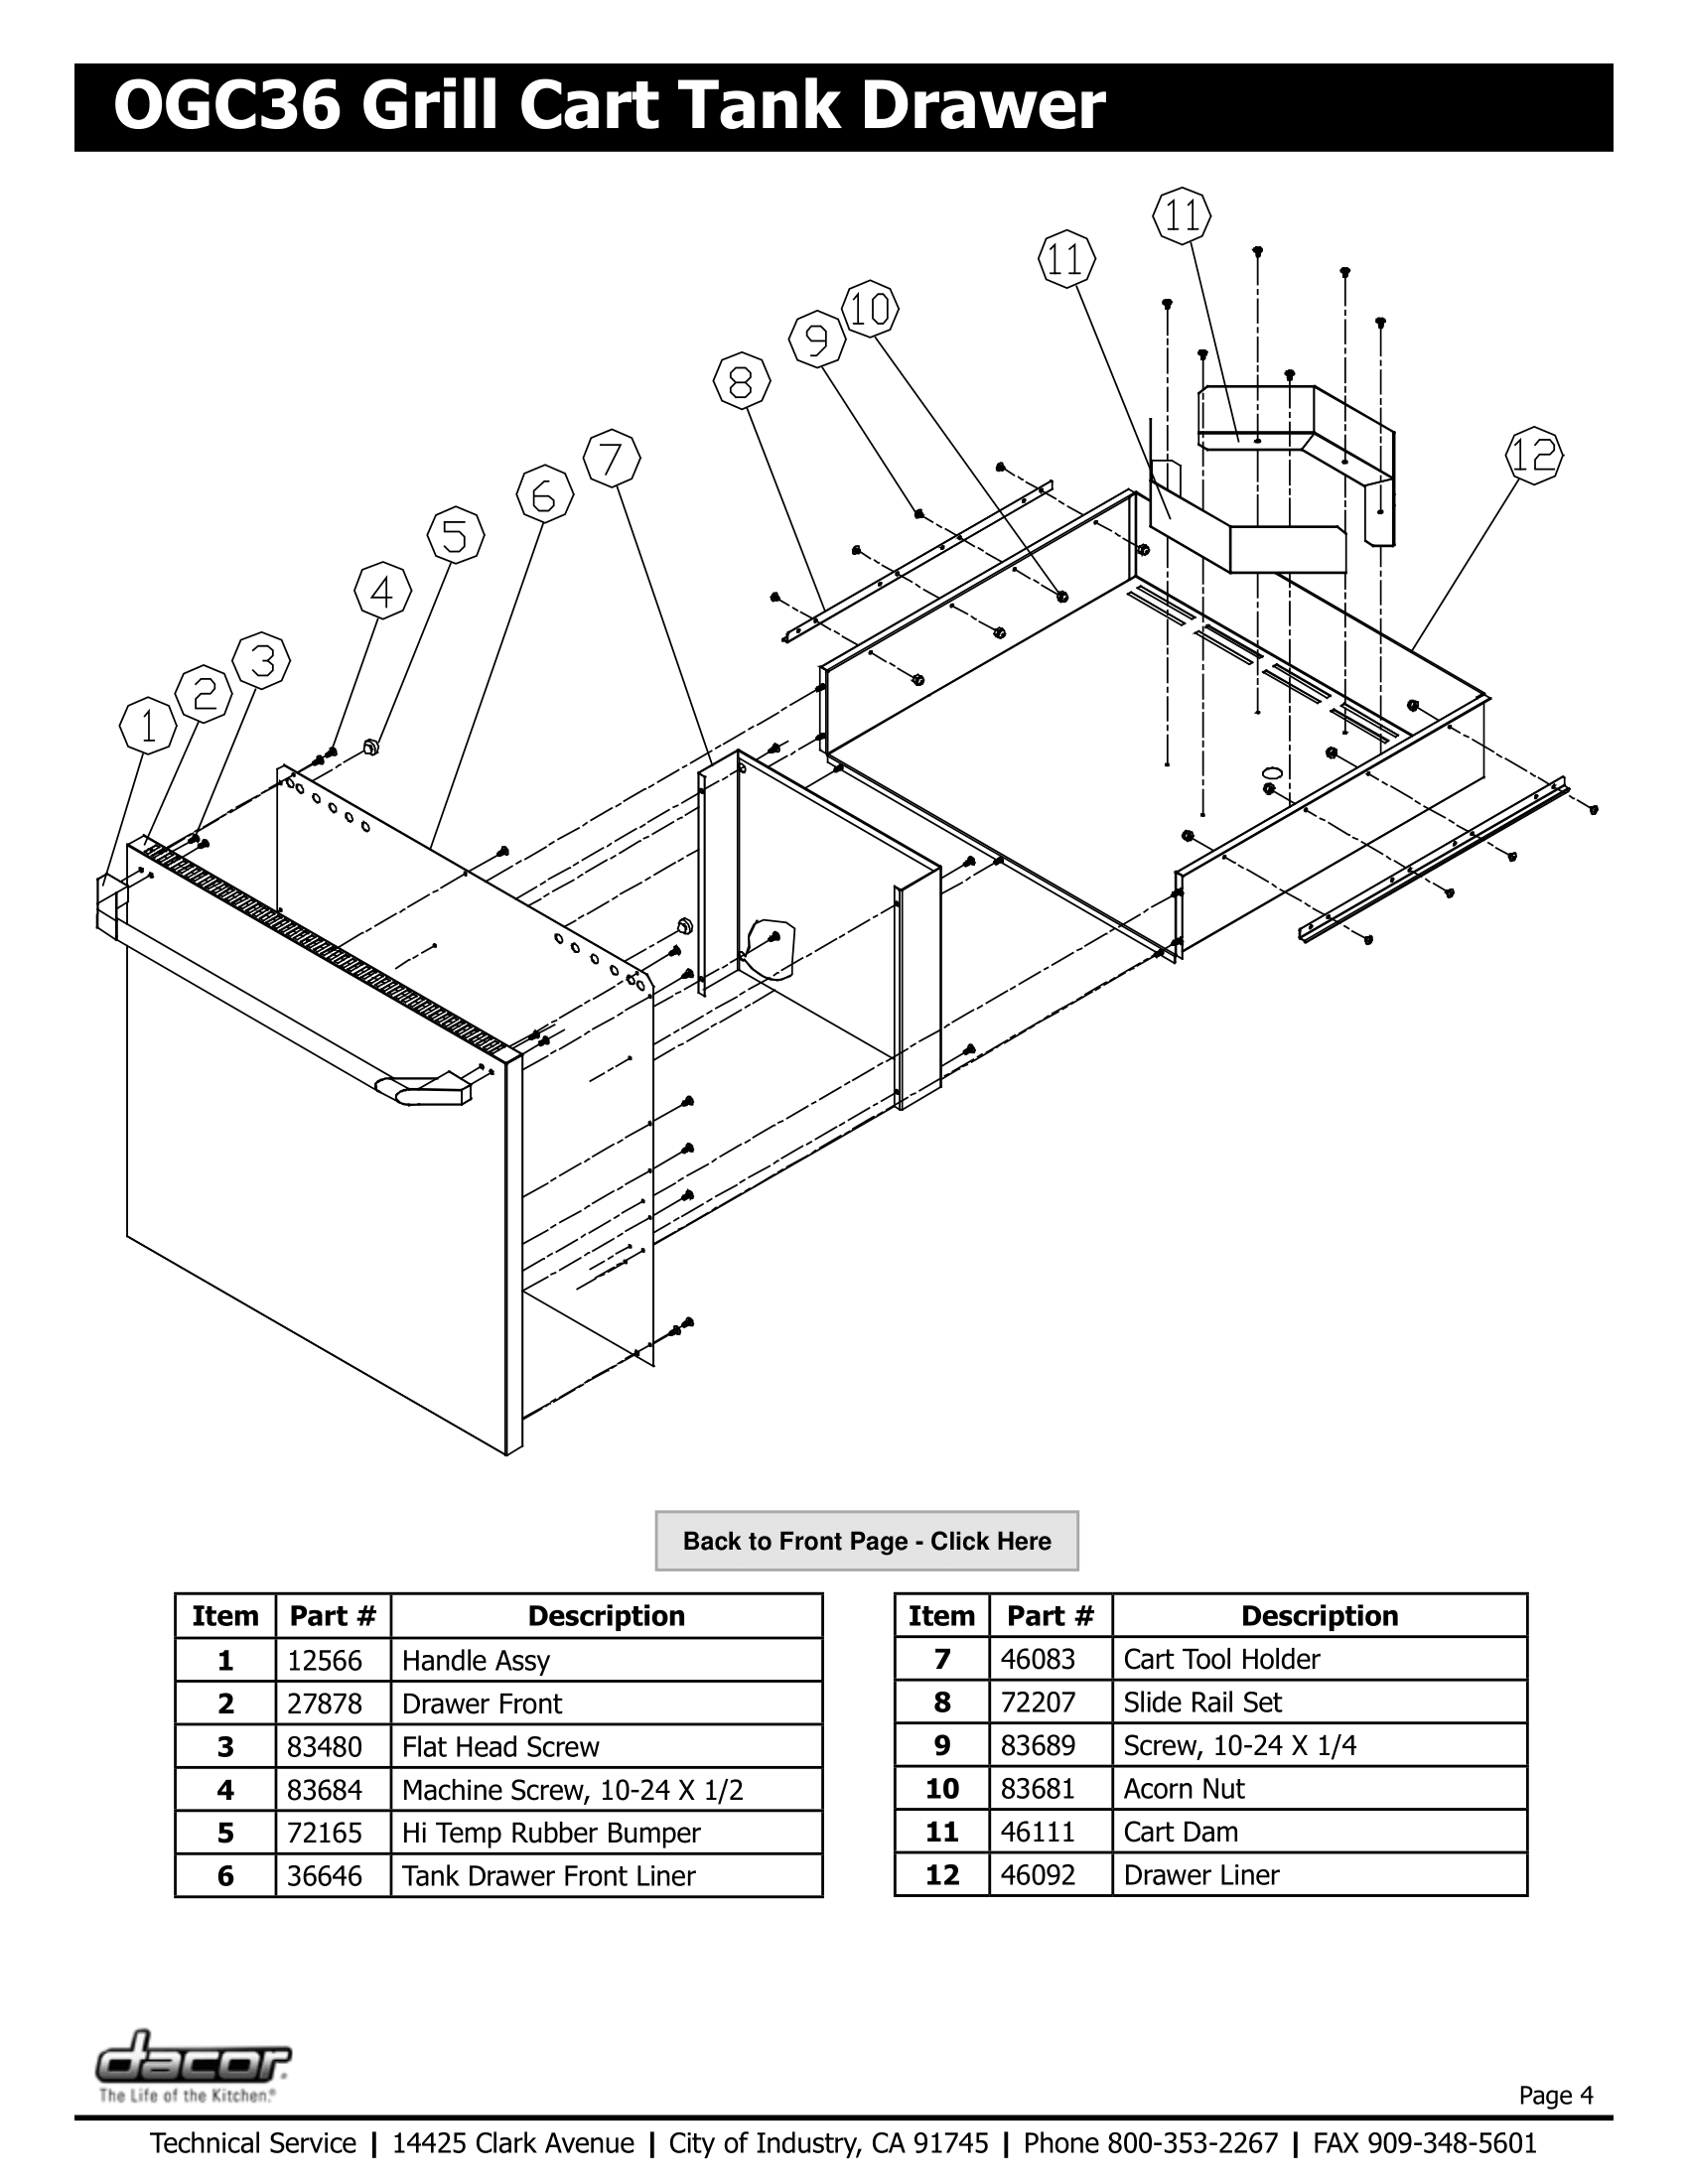 Dacor OGC36 Tank Drawer Schematic